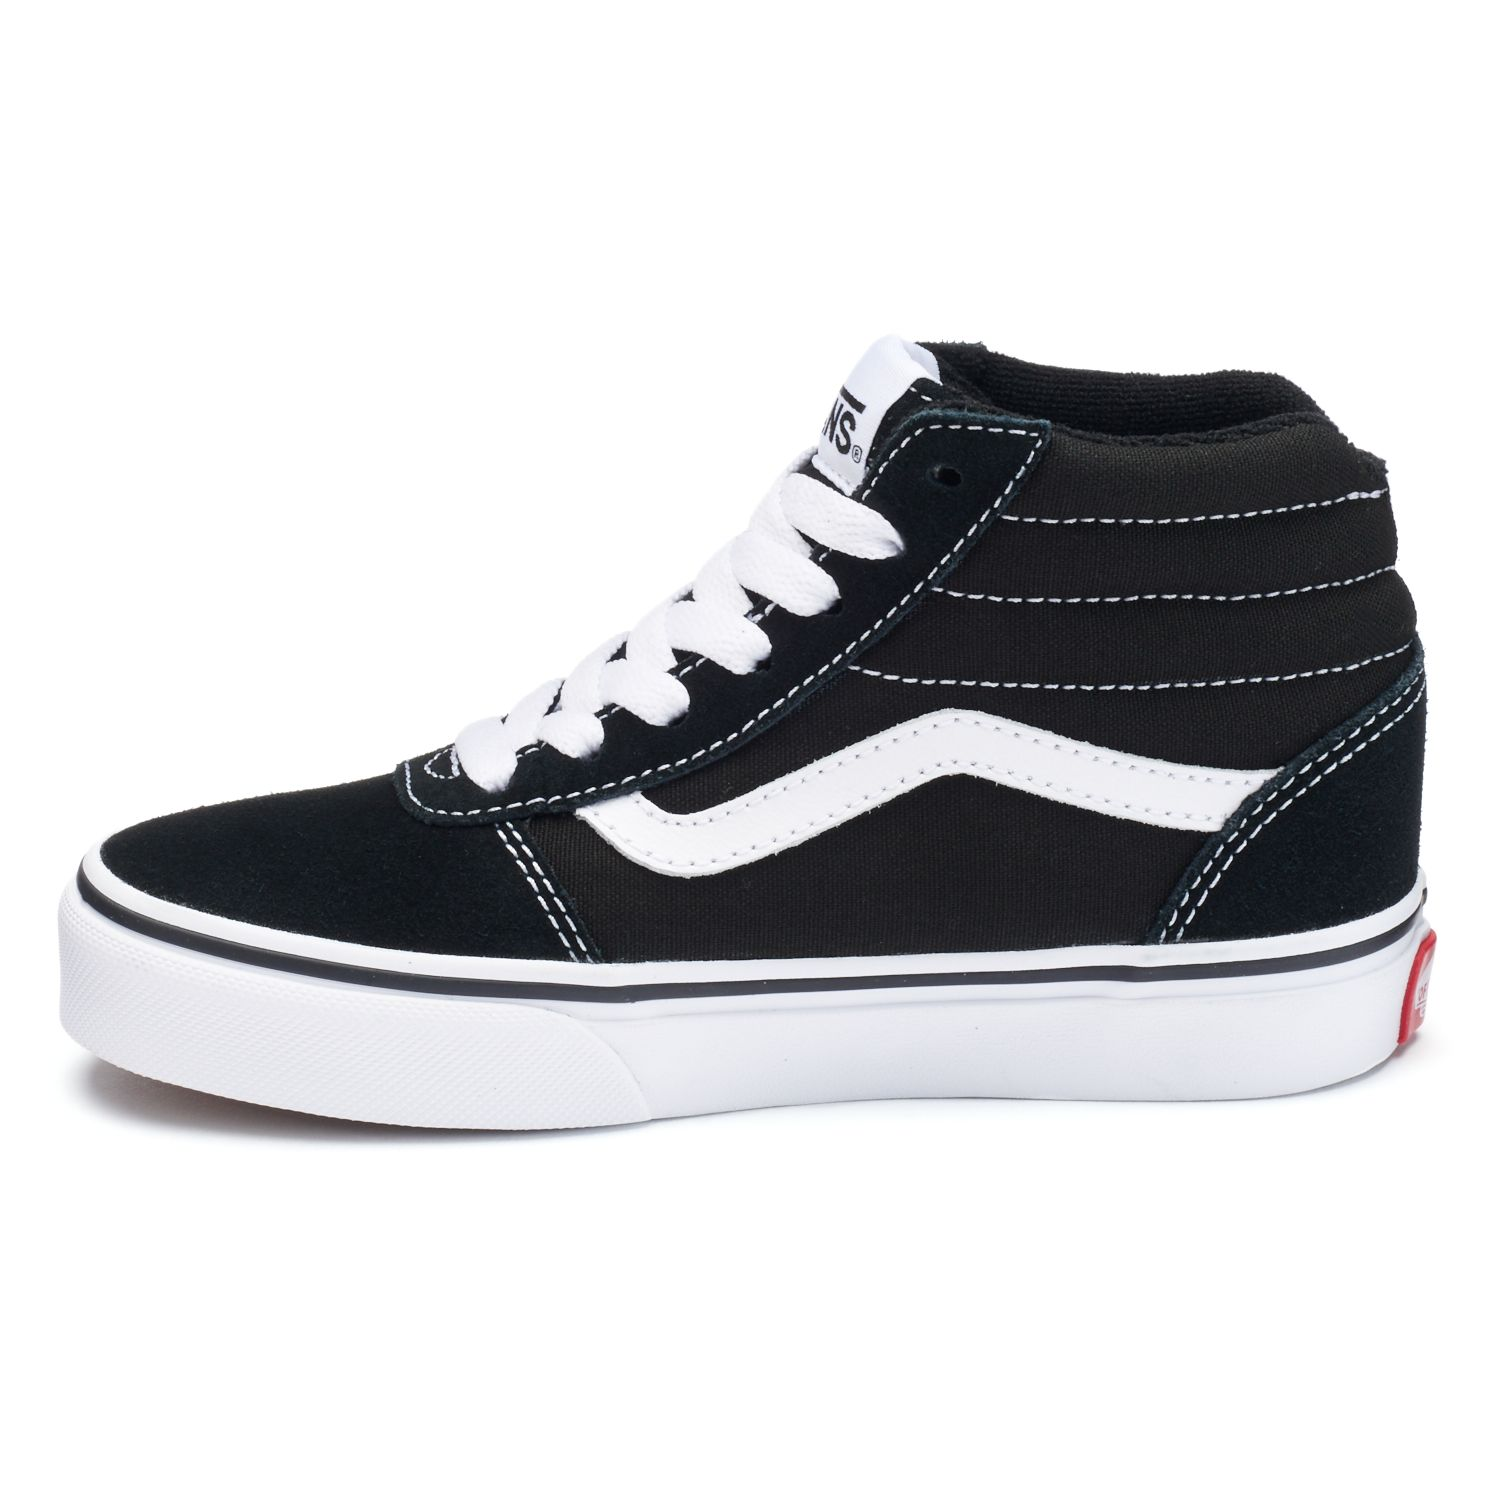 6f6f28a8285 Sale Vans Shoes